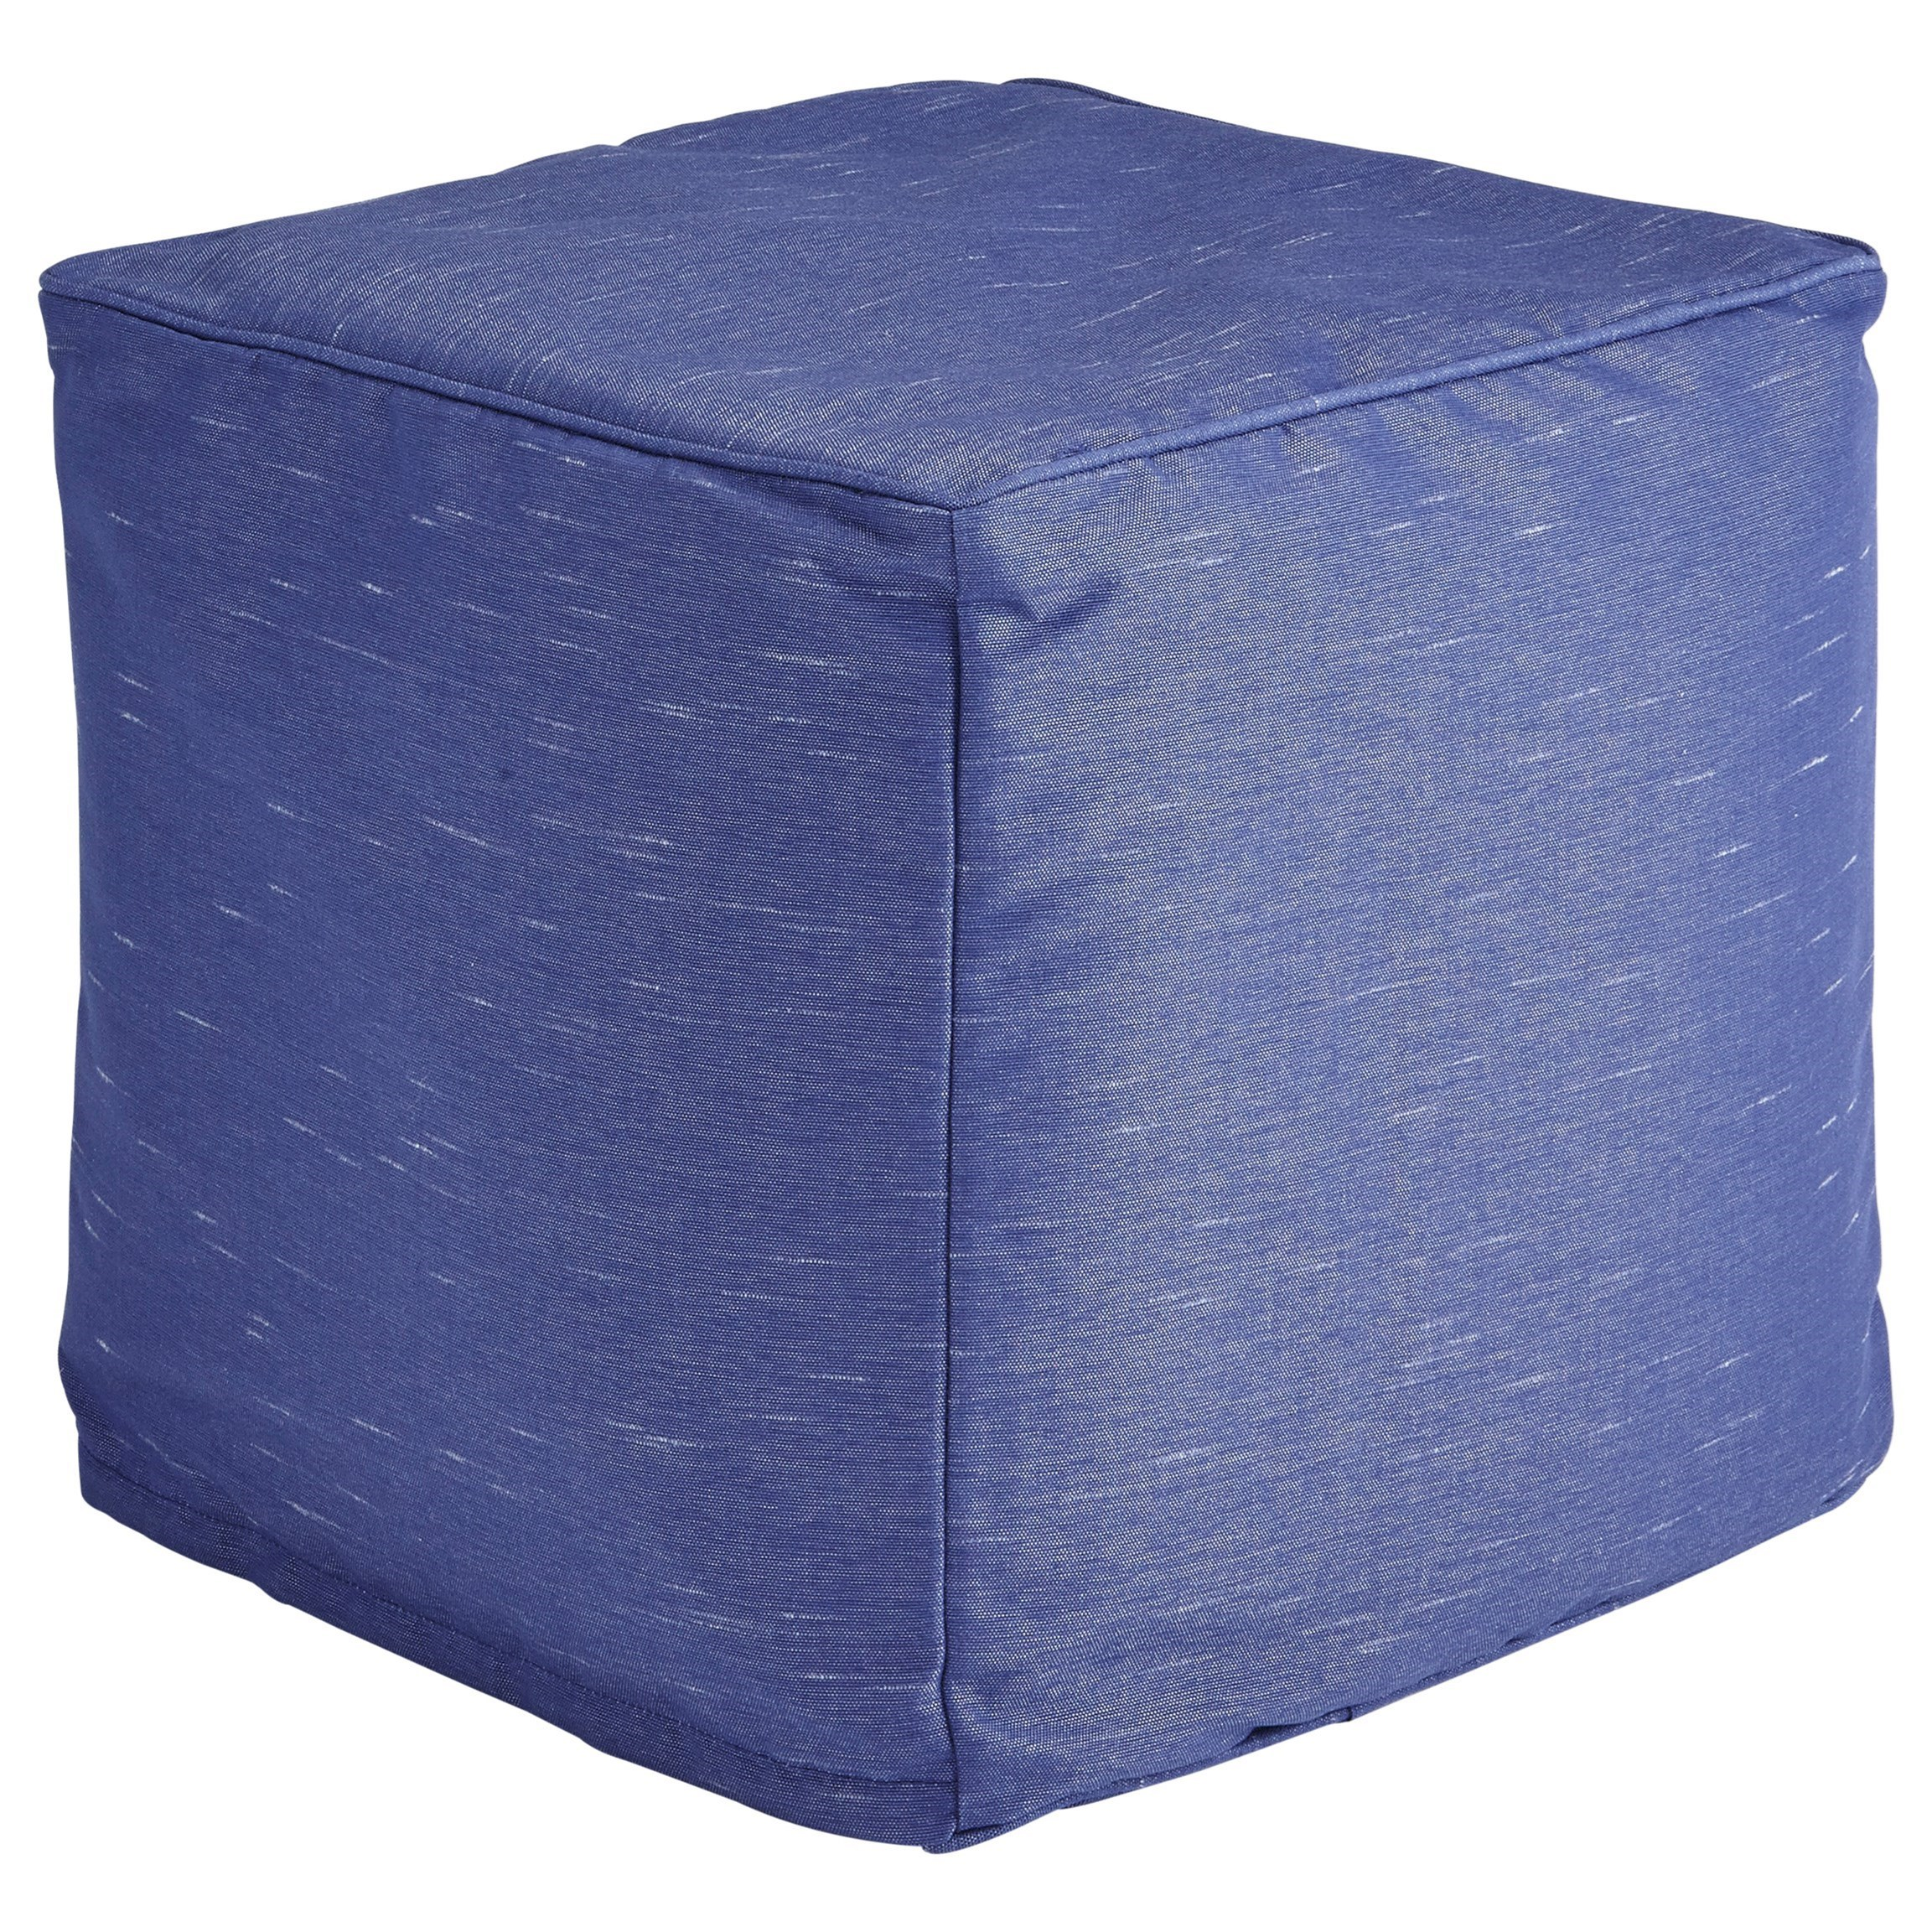 Poufs Catalina Blue Pouf by Signature Design by Ashley at Lapeer Furniture & Mattress Center